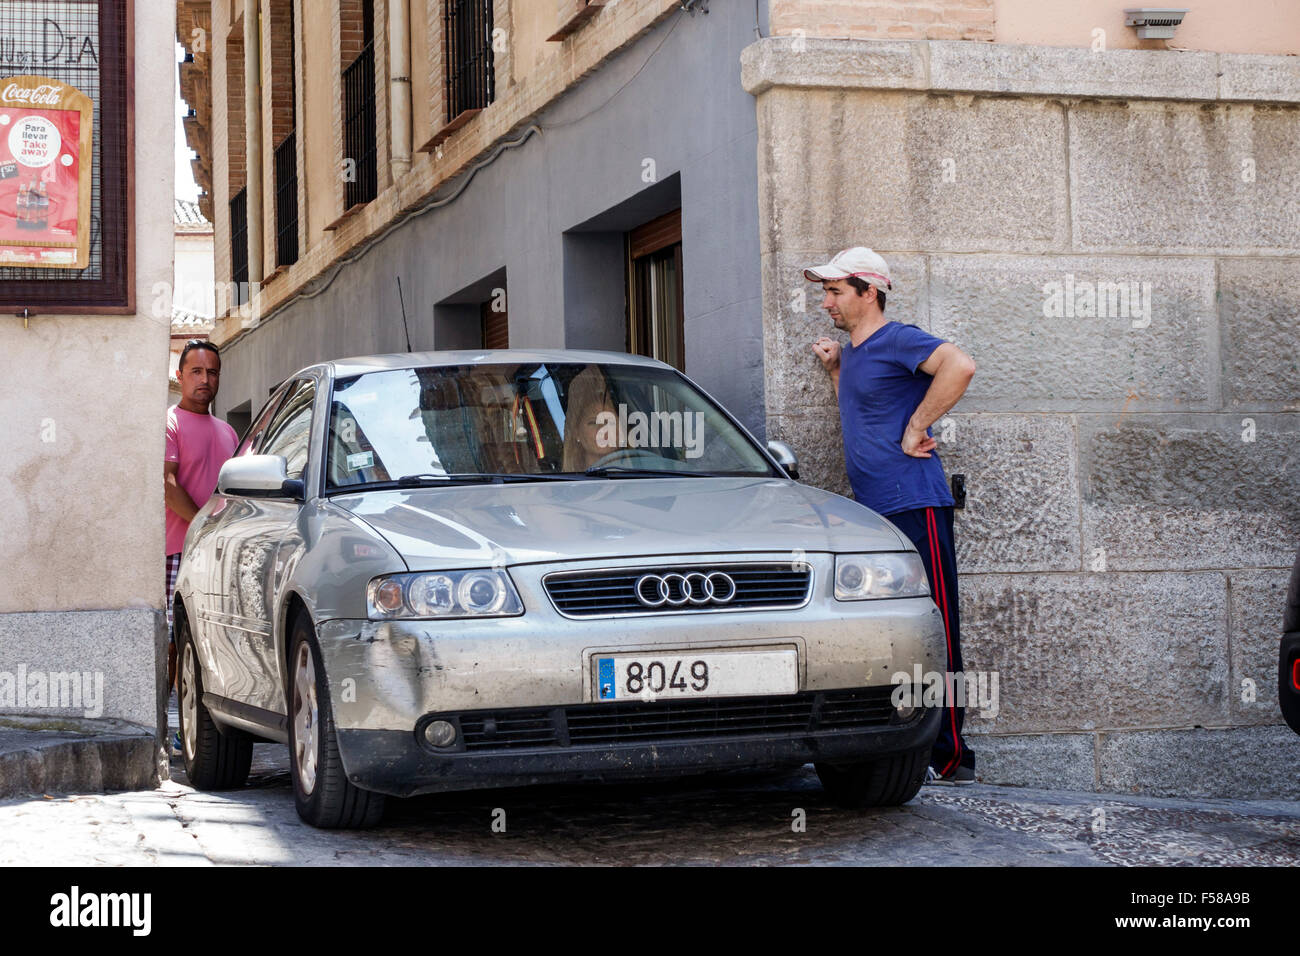 Audi Car Street Stock Photos Audi Car Street Stock Images Alamy - Audi toledo